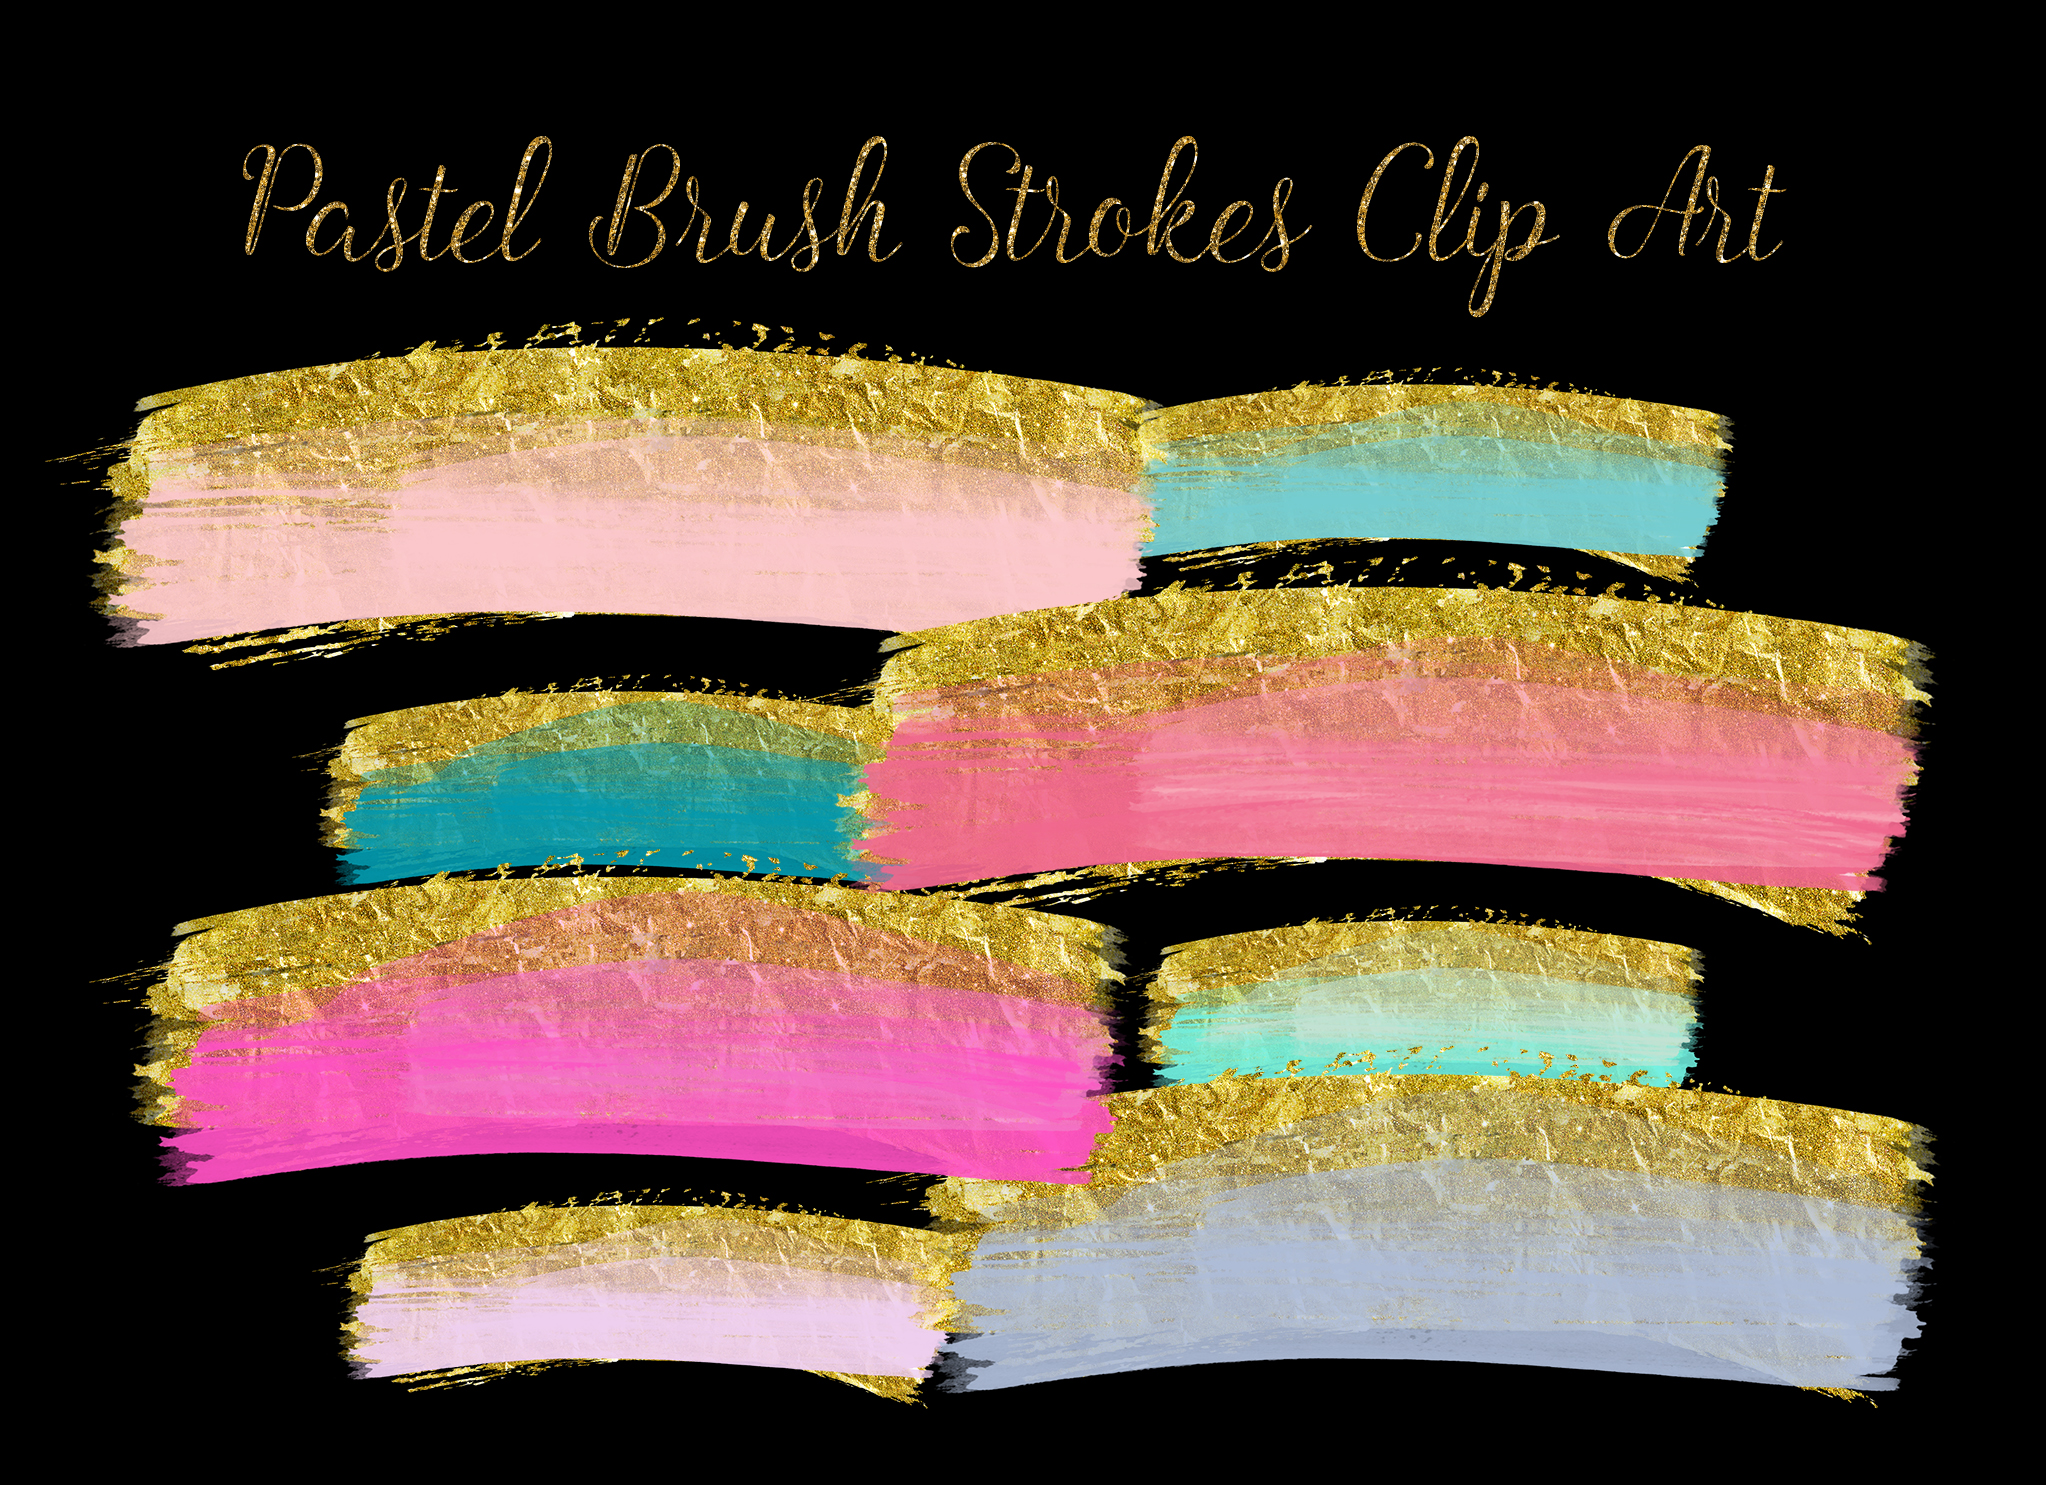 brush strokes clip art, gold brush clipart, gold paint clipart, wedding gold Paint Clipart, gold ink strokes clipart, watercolor clip art example image 3